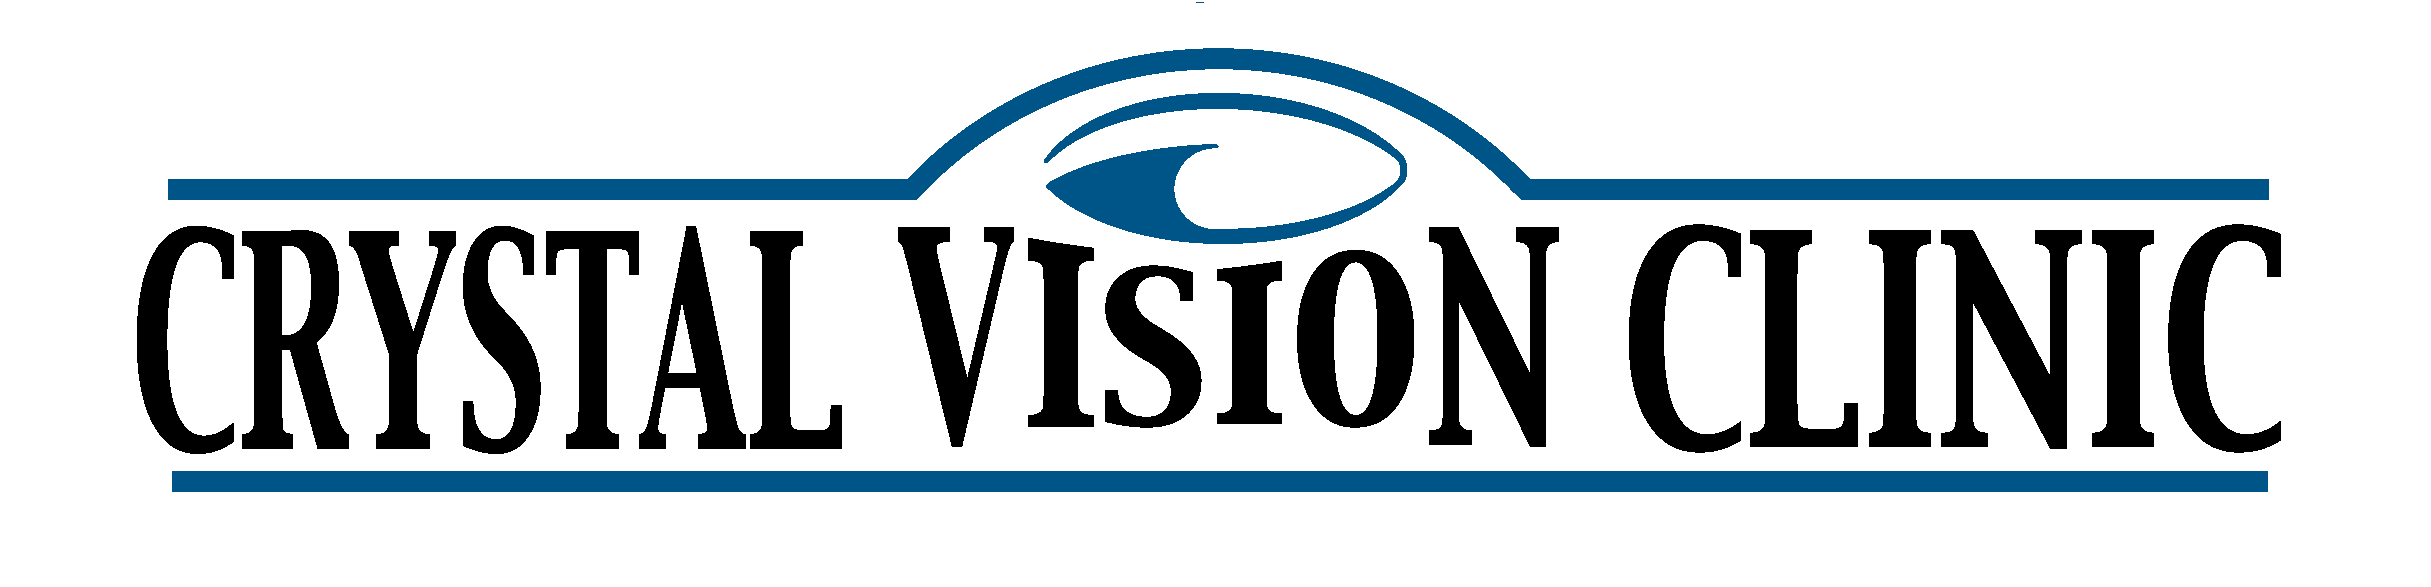 Crystal Vision Clinic